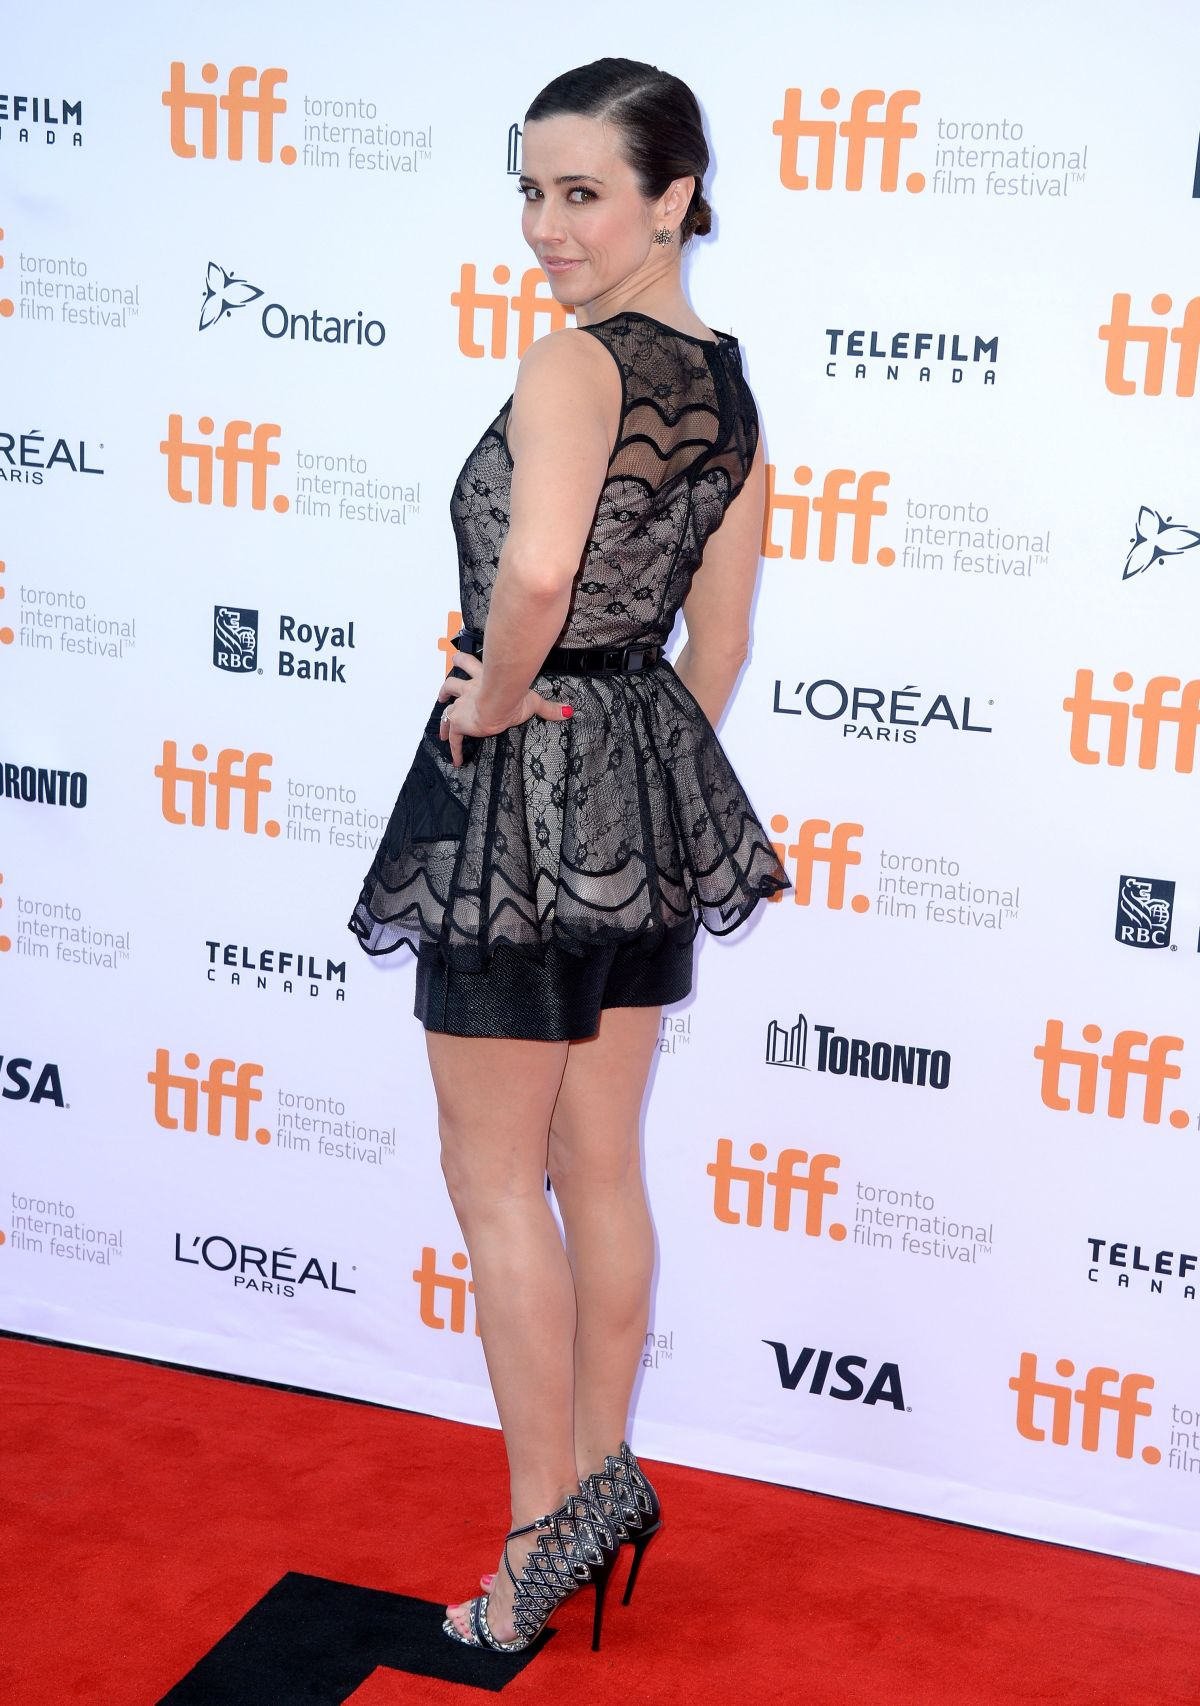 linda-cardellini-at-welcome-to-me-premiere-in-toronto_3